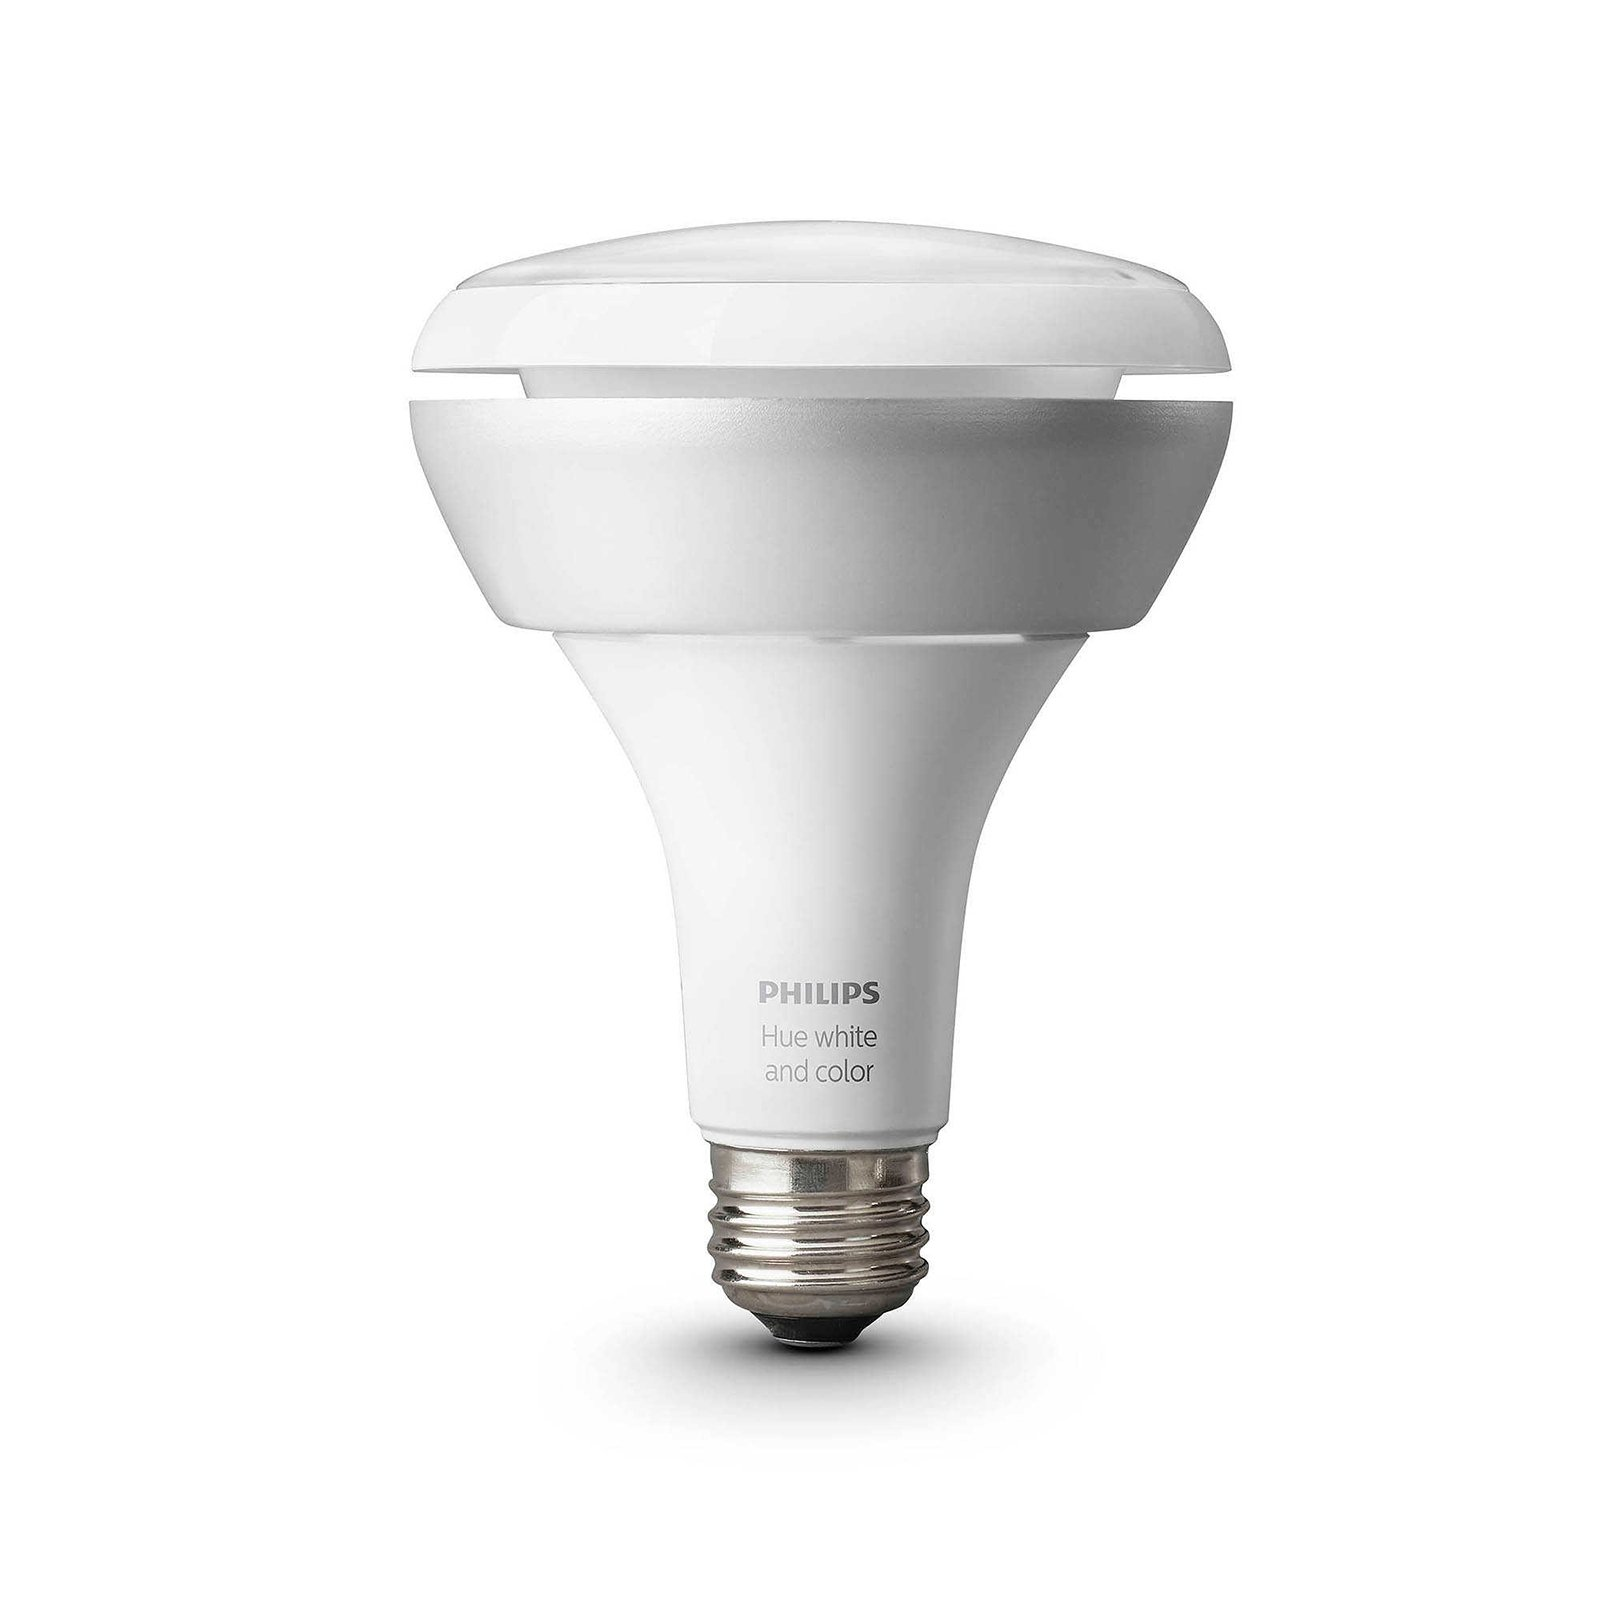 Philips 456665 Hue White & Color Ambiance BR30 Extension Bulb, Works with Amazon Alexa (Certified Refurbished)